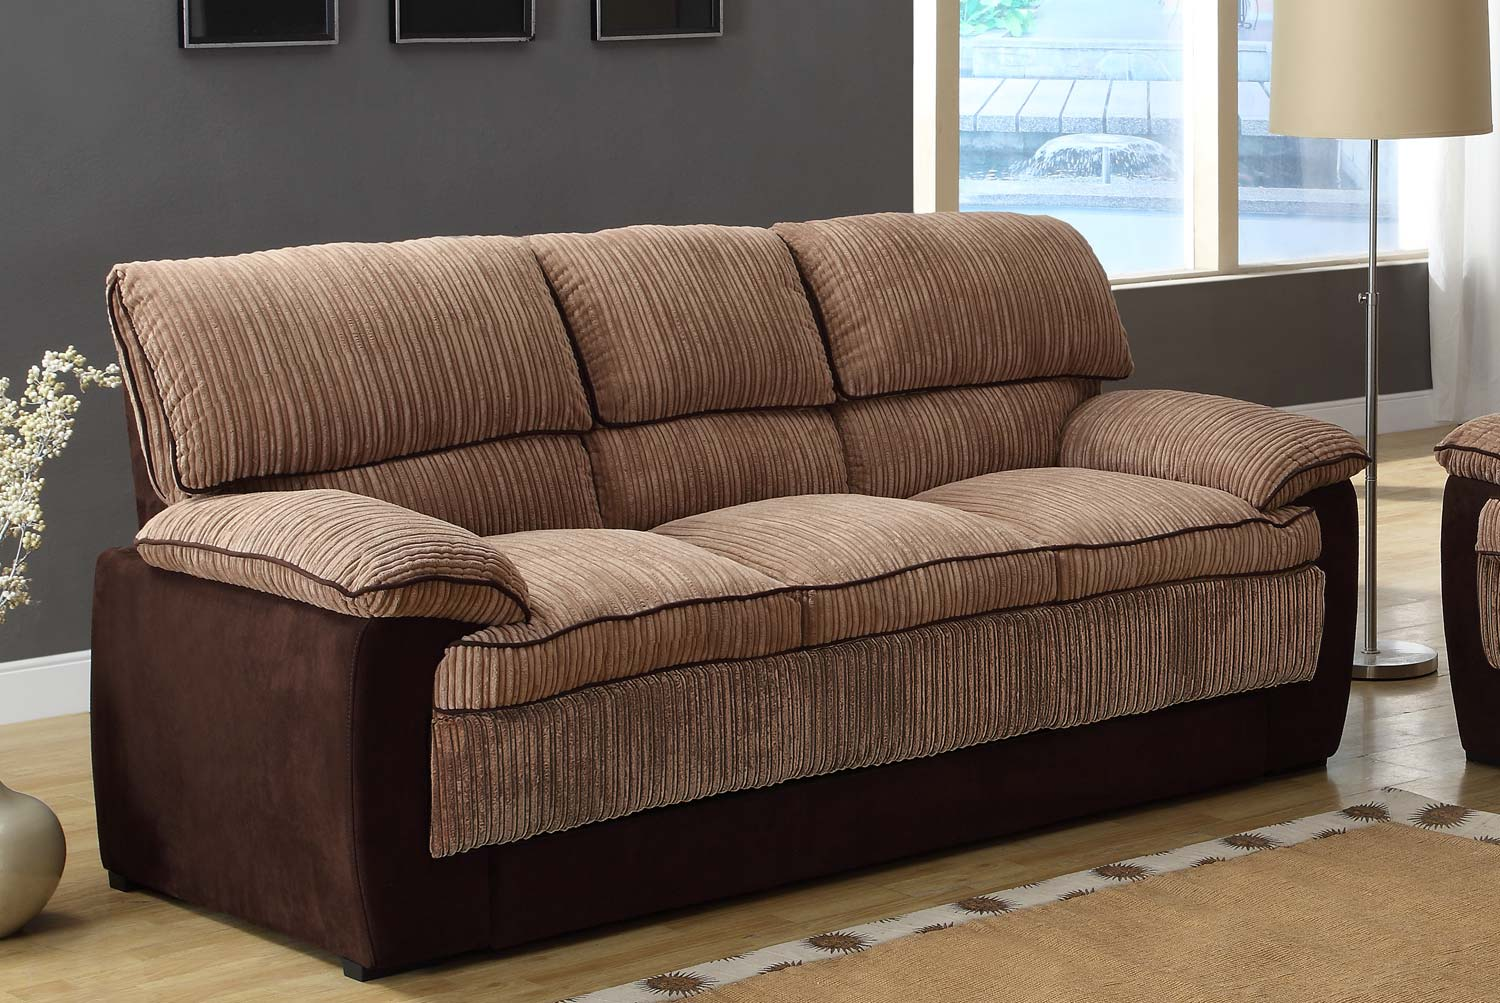 sectional recliner sofas cheap sofa beds in los angeles covers a comfortable look with elegance